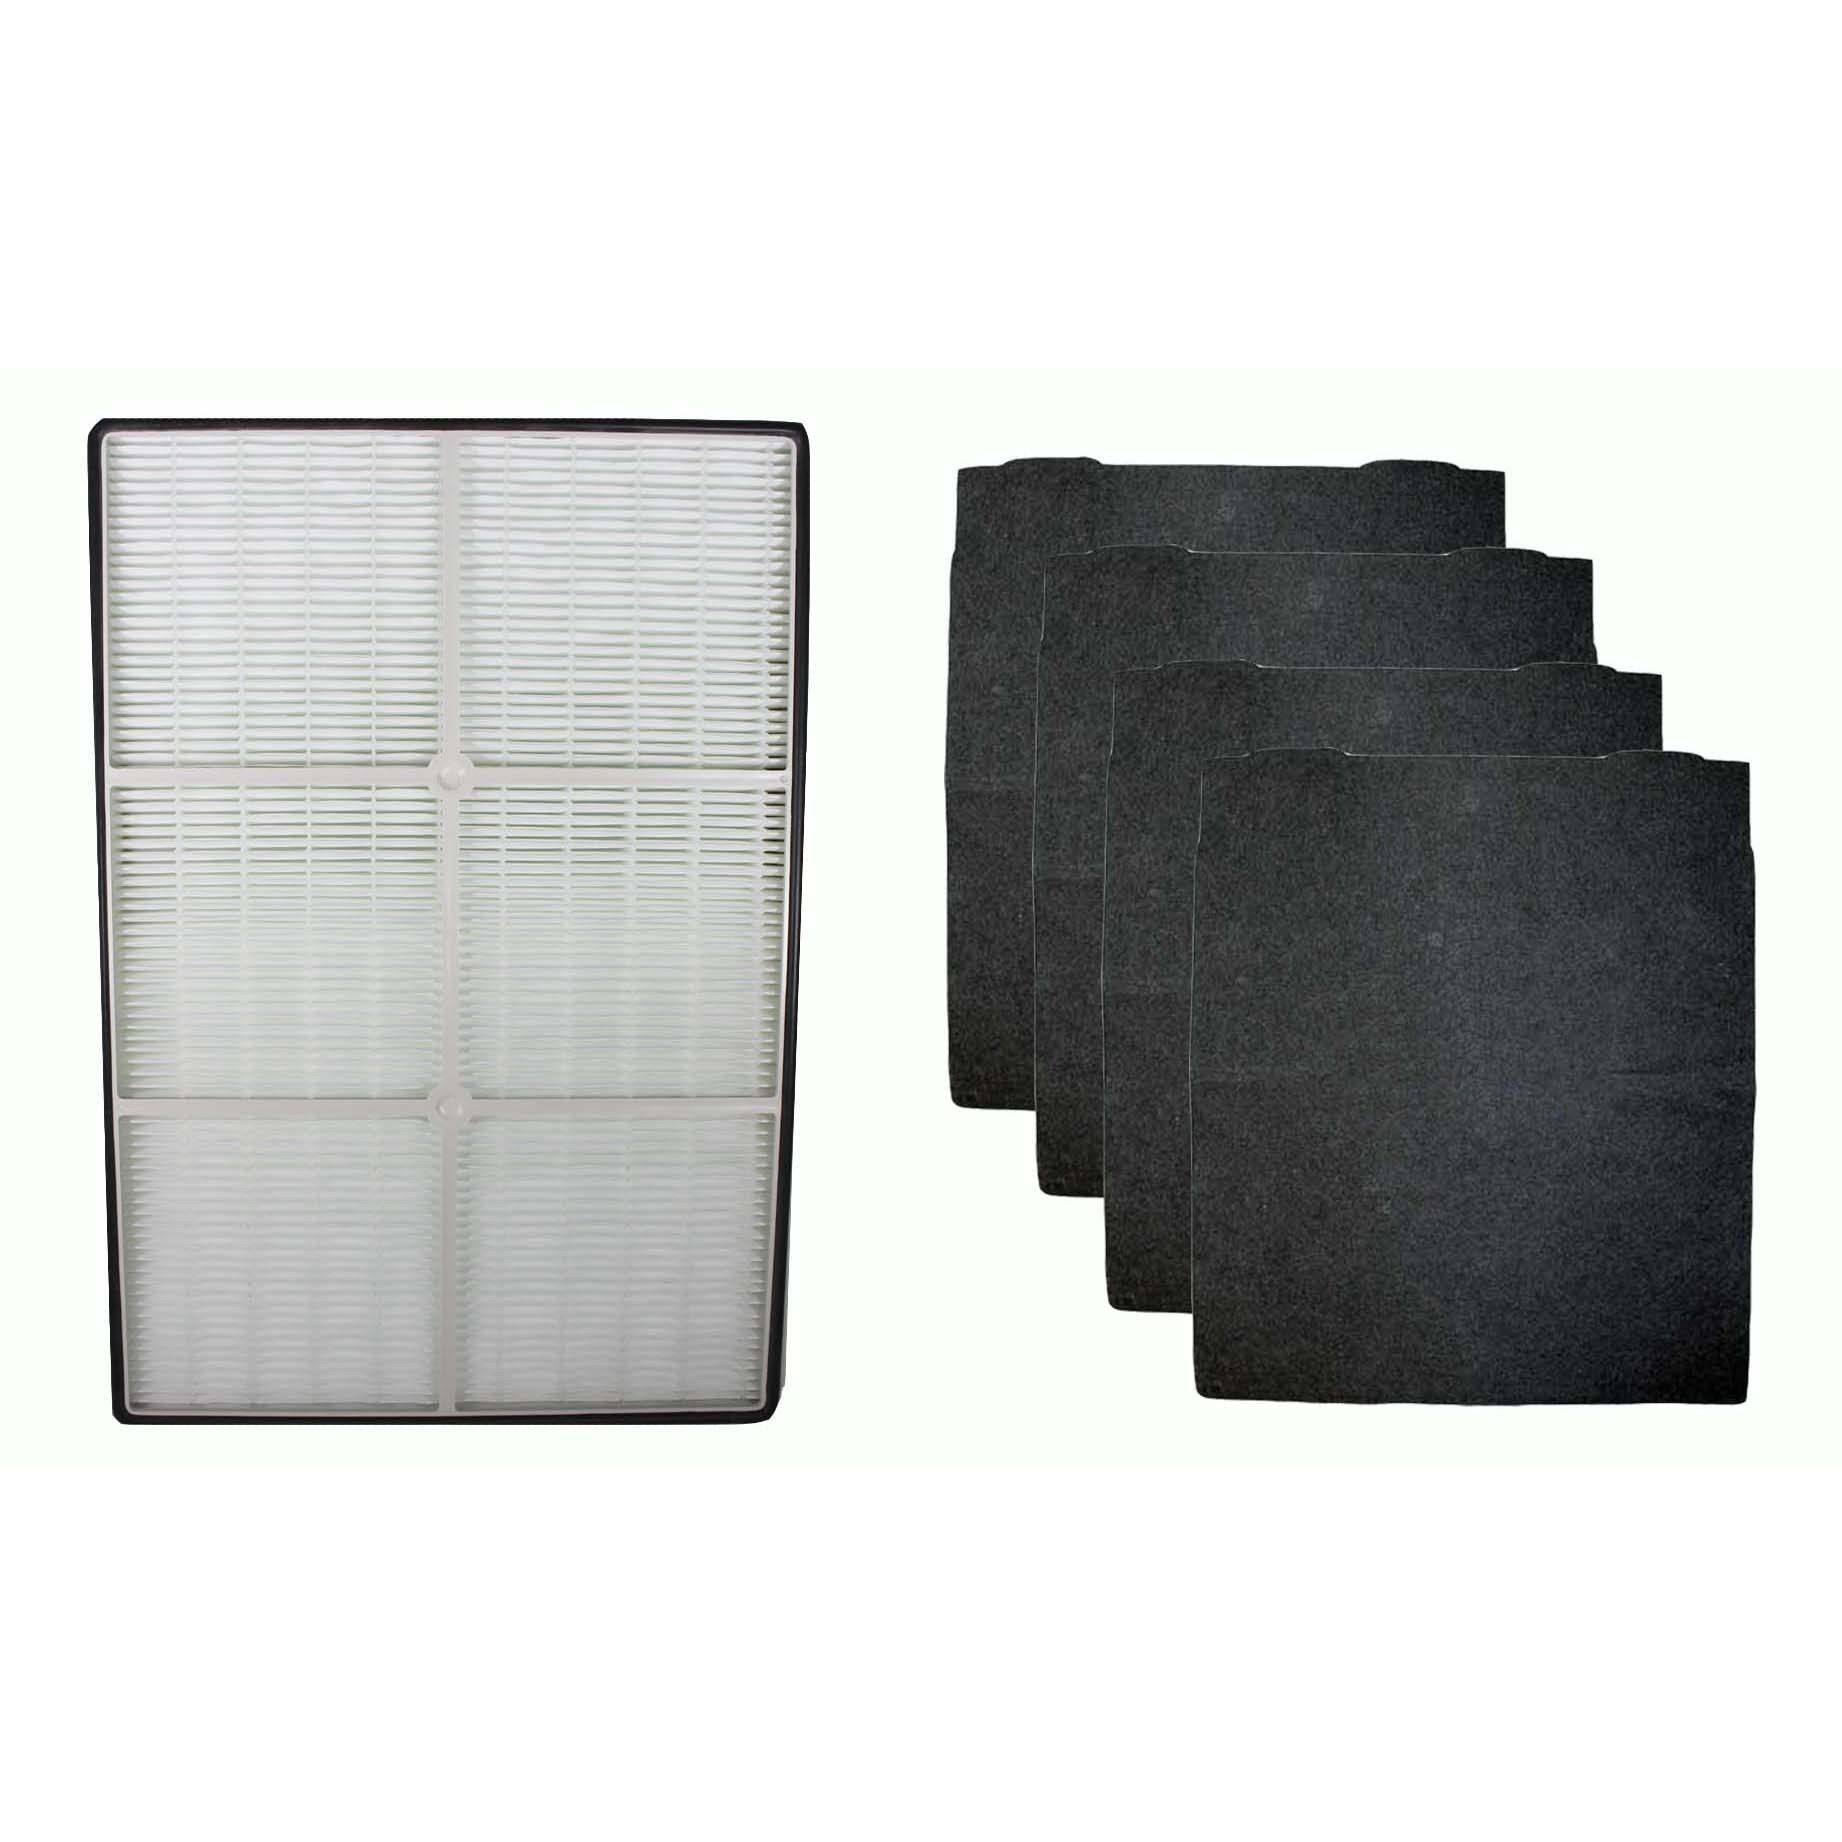 Replacement Filter Kit, Fits Whirlpool Air Purifiers AP150